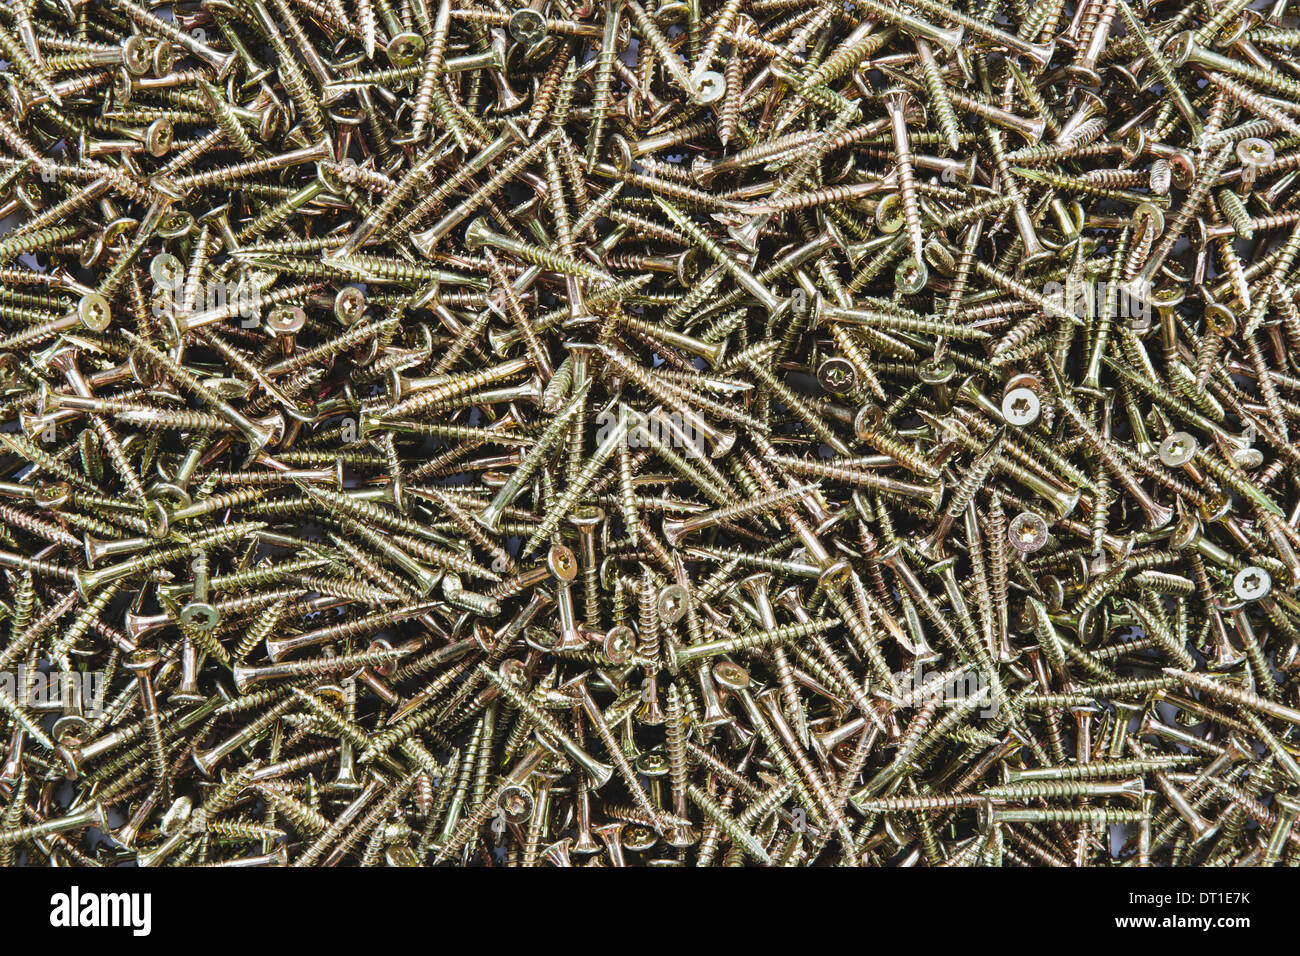 pile of brass screws with screw thread - Stock Image